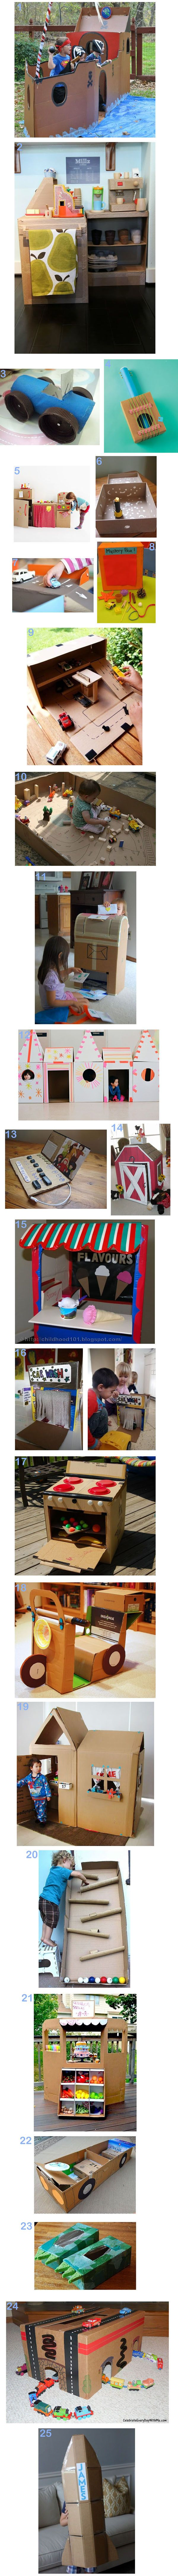 Cardboard Box Ideas. Cool ideas: creativity shared with a child is something not forgetton when they grow into their own...